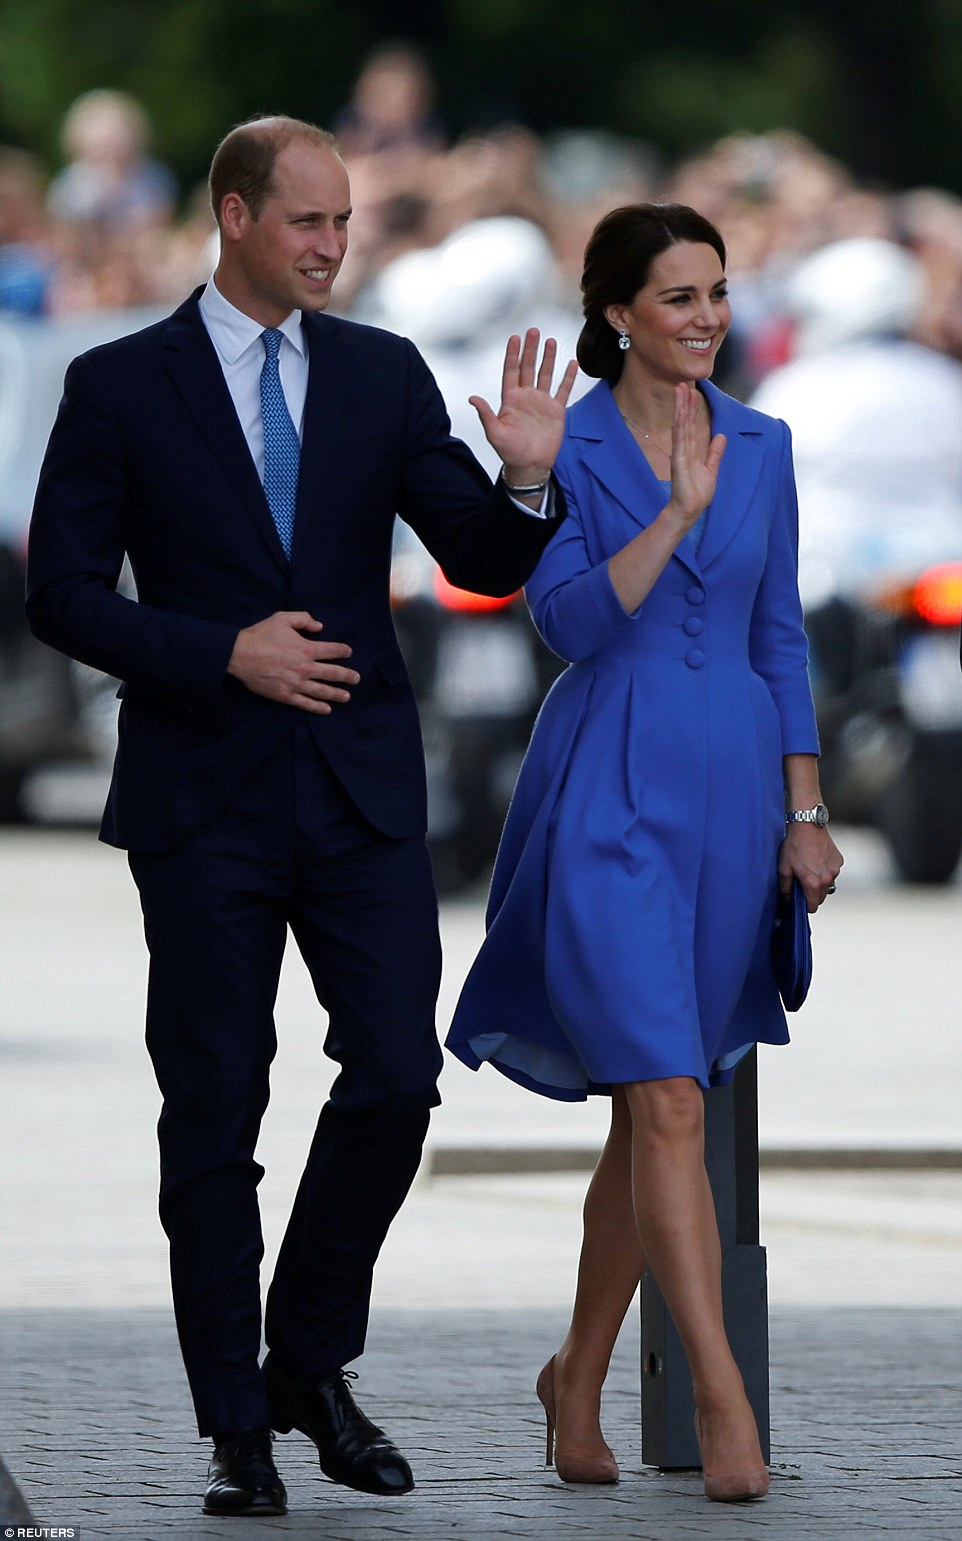 The couple looked thrilled with the rapturous reception they received, following a private lunch with Chancellor Angela Merkel